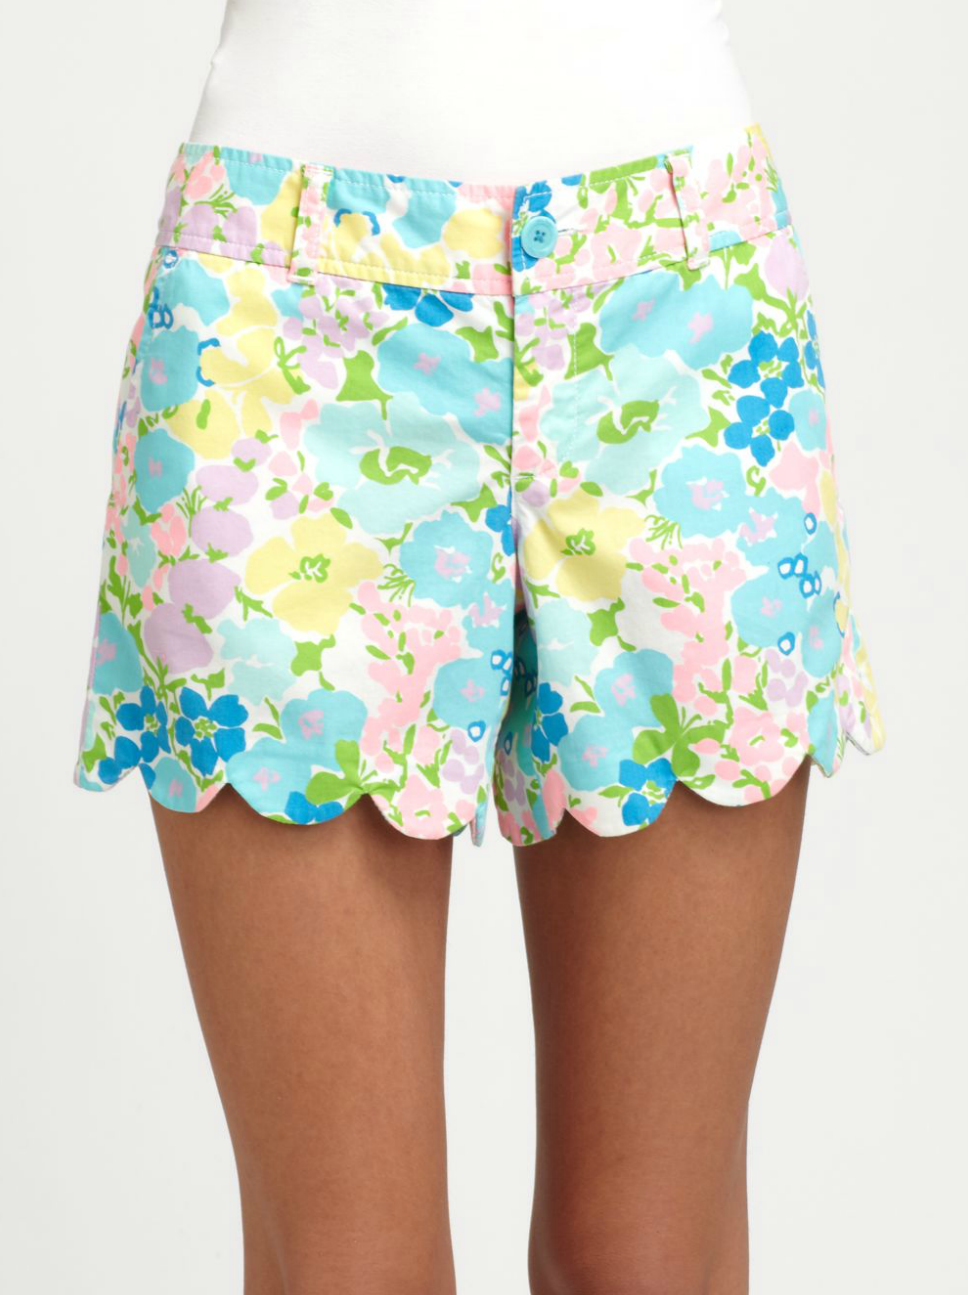 Don these adorable floral Lilly Pulitzer Buttercup Shorts ($51, originally $68) with a crop top and espadrilles for your next weekend beach jaunt.